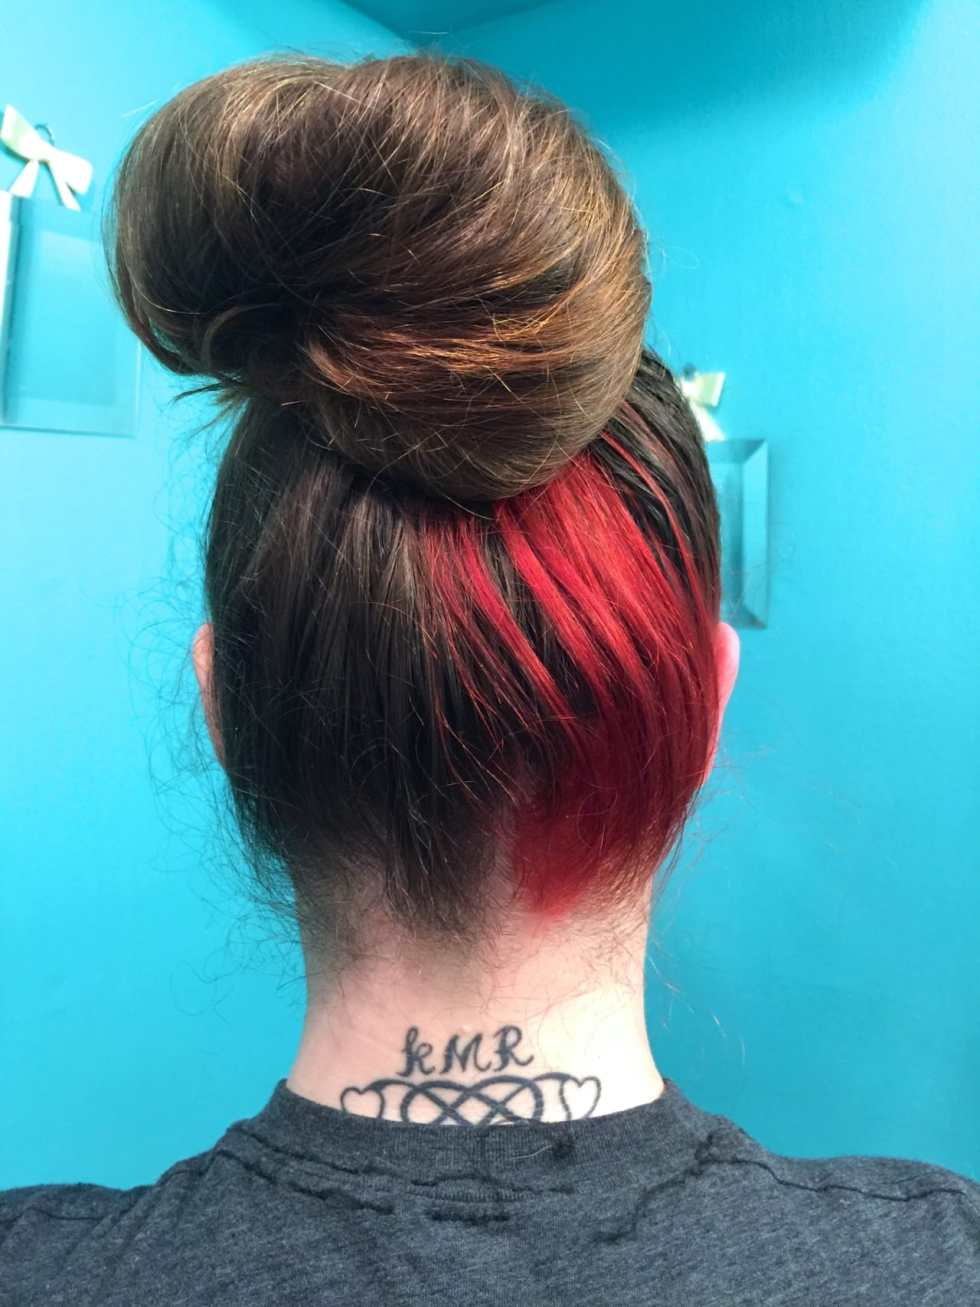 Beginner's Guide to Hair Dye by Katie Crafts; http://www.katiecrafts.com